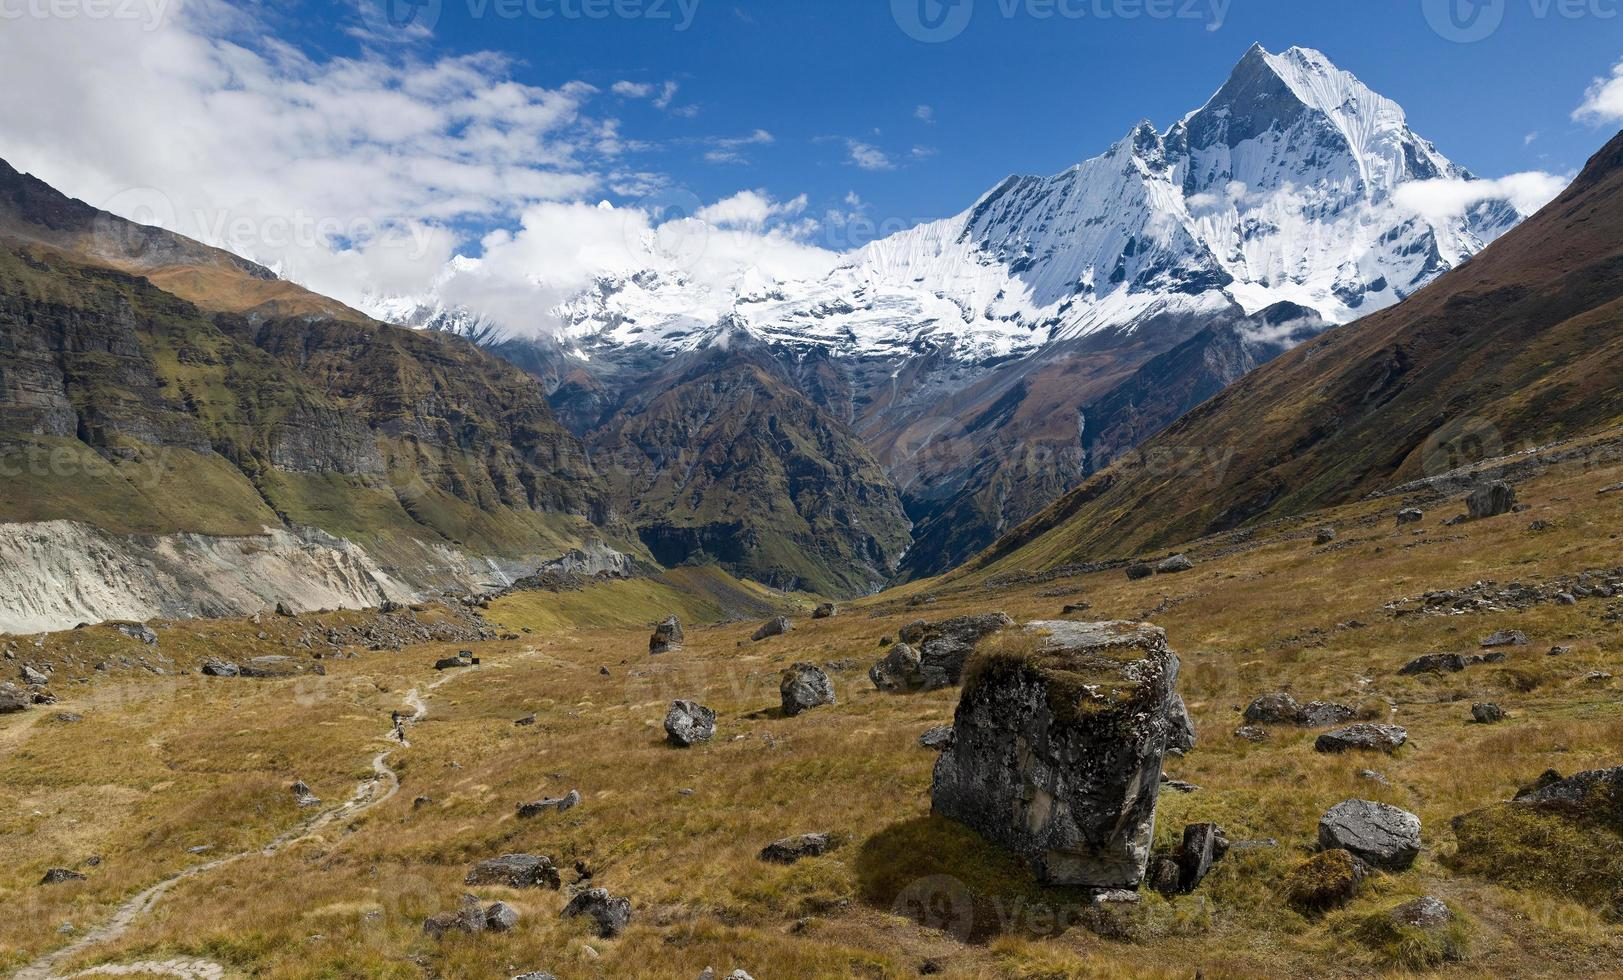 View from Annapurna Base Camp photo